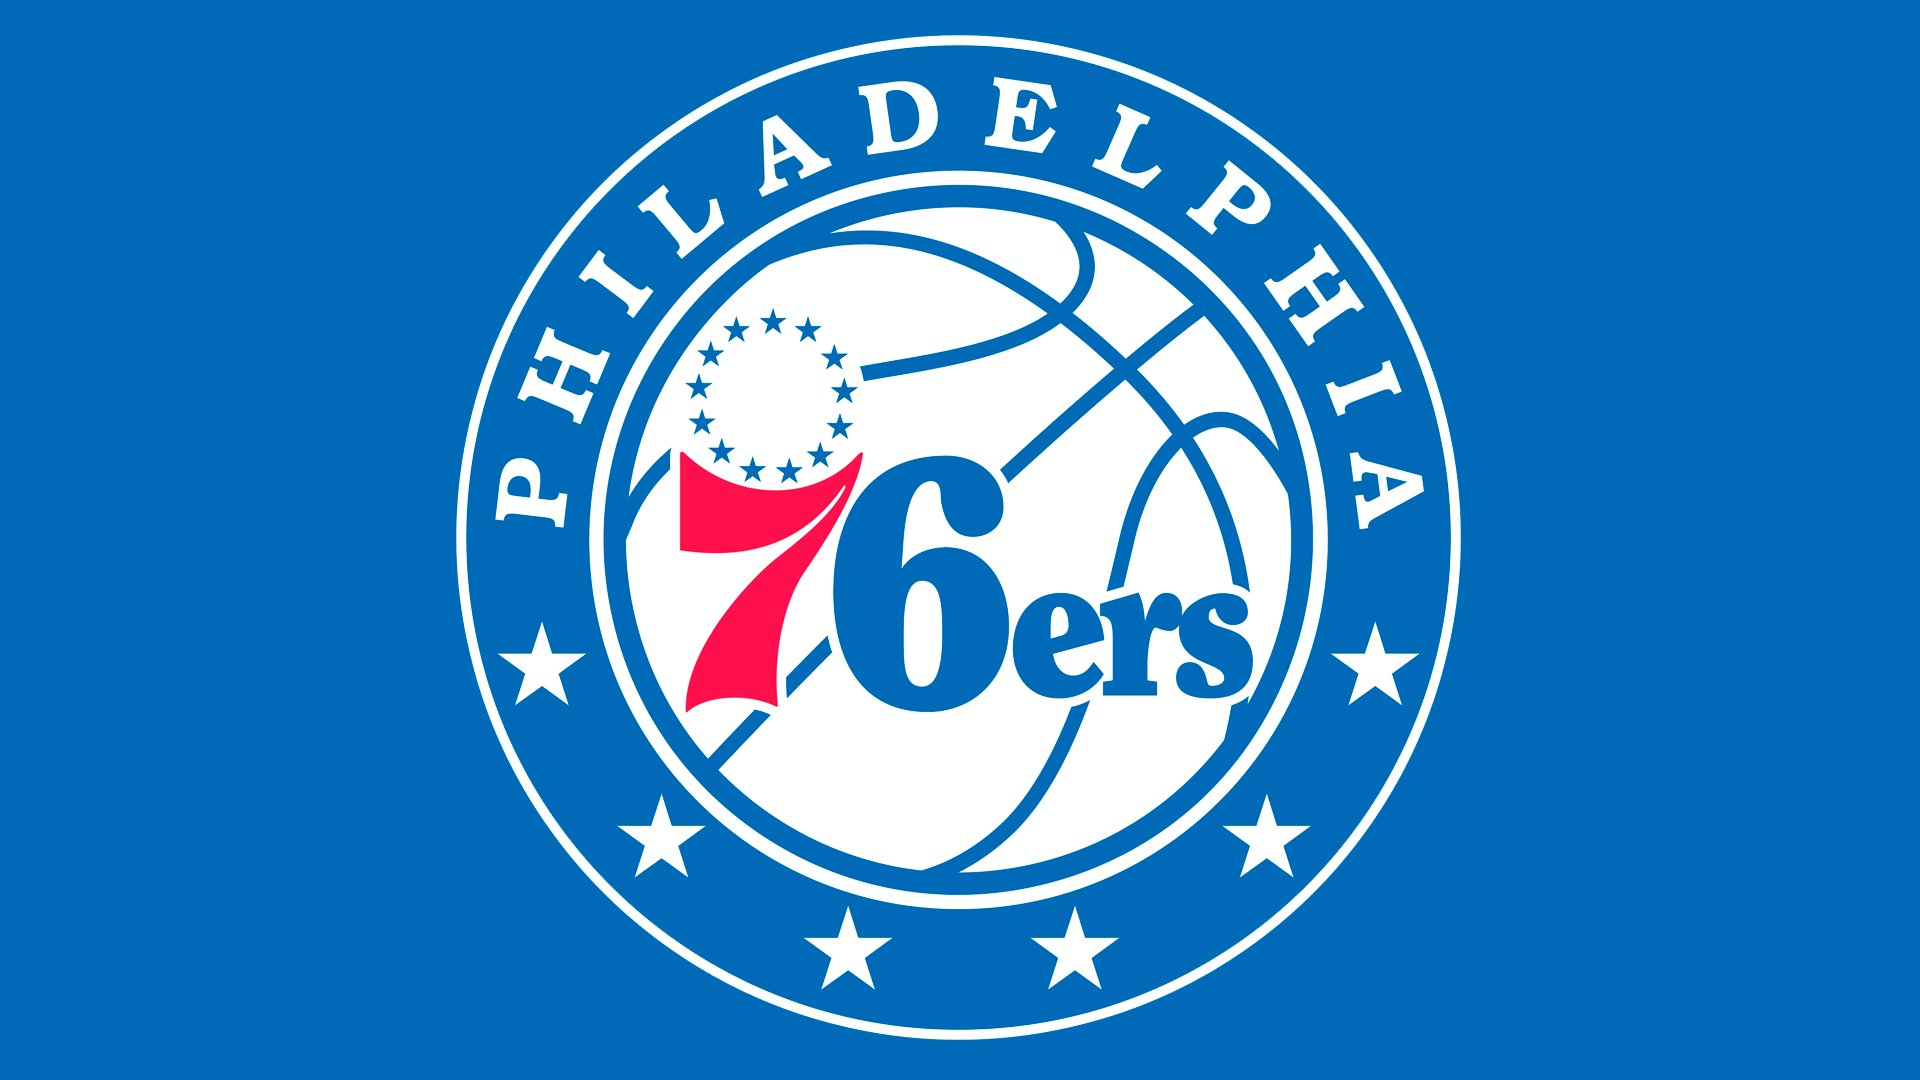 Philadelphia 76ers Logo - Philadelphia 76ers Logo, Philadelphia 76ers Symbol Meaning, History ...